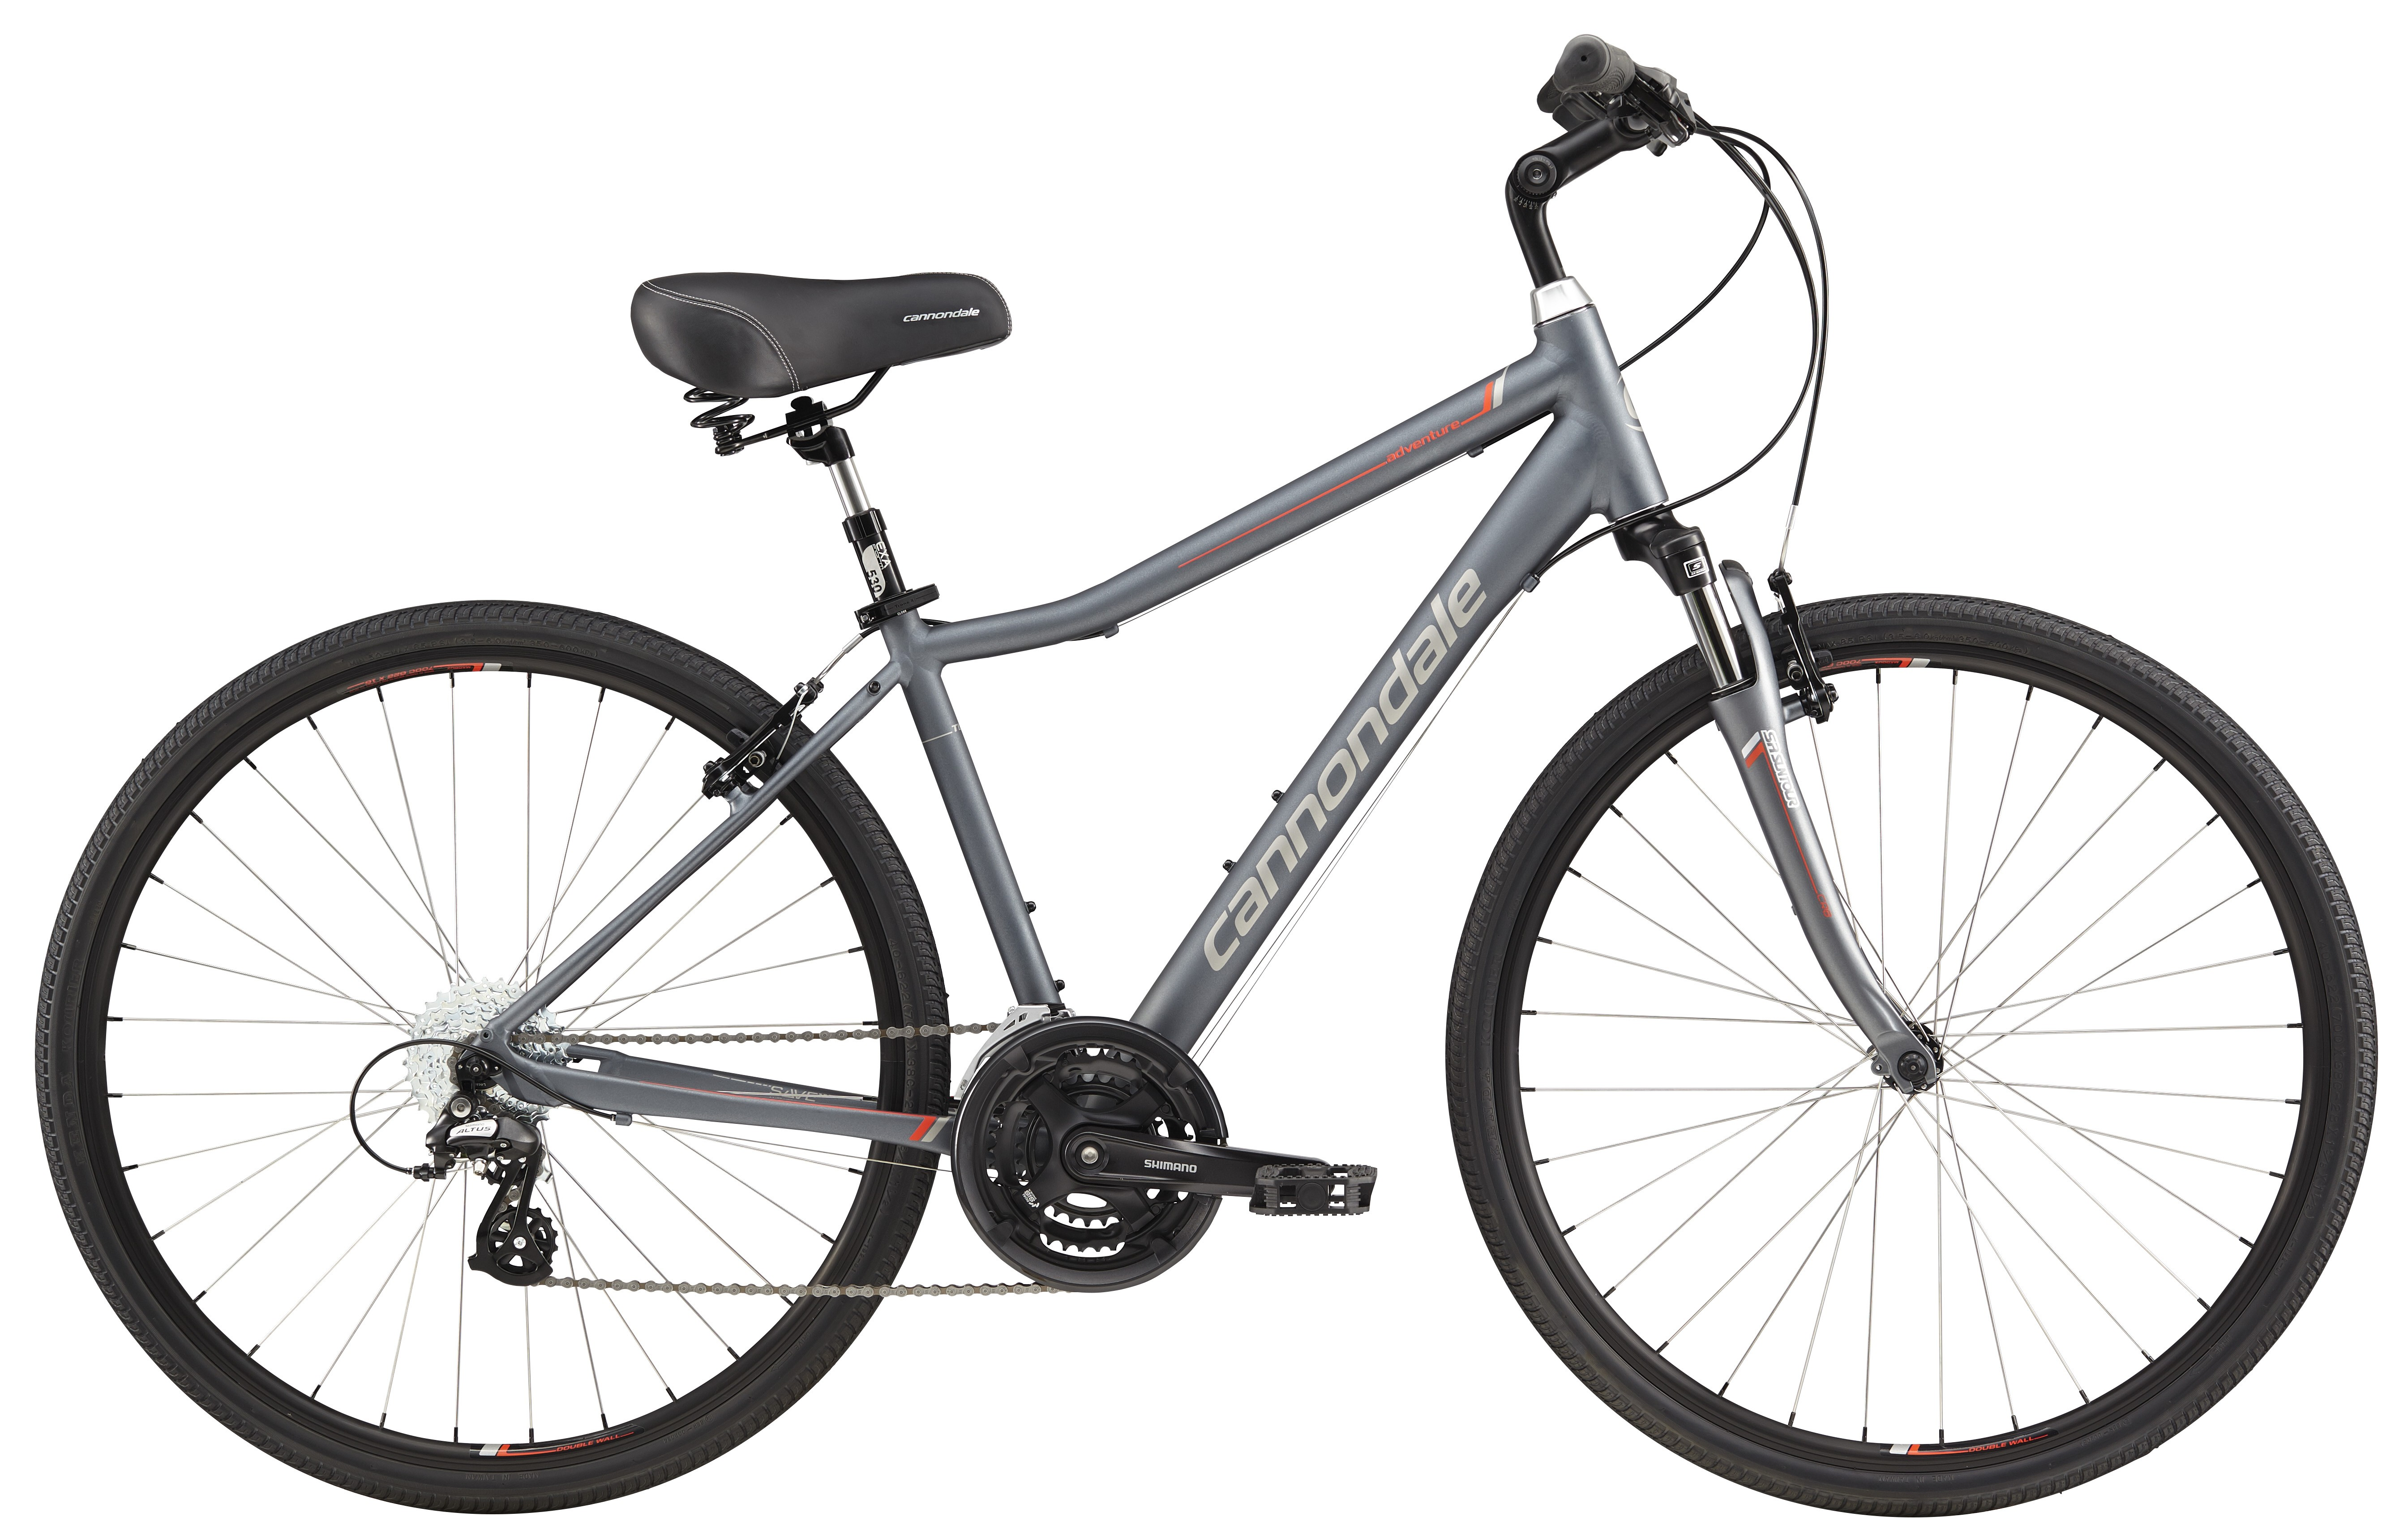 2017 Cannondale Adventure 2 Mens Gray/Silver Comfort Hybrid